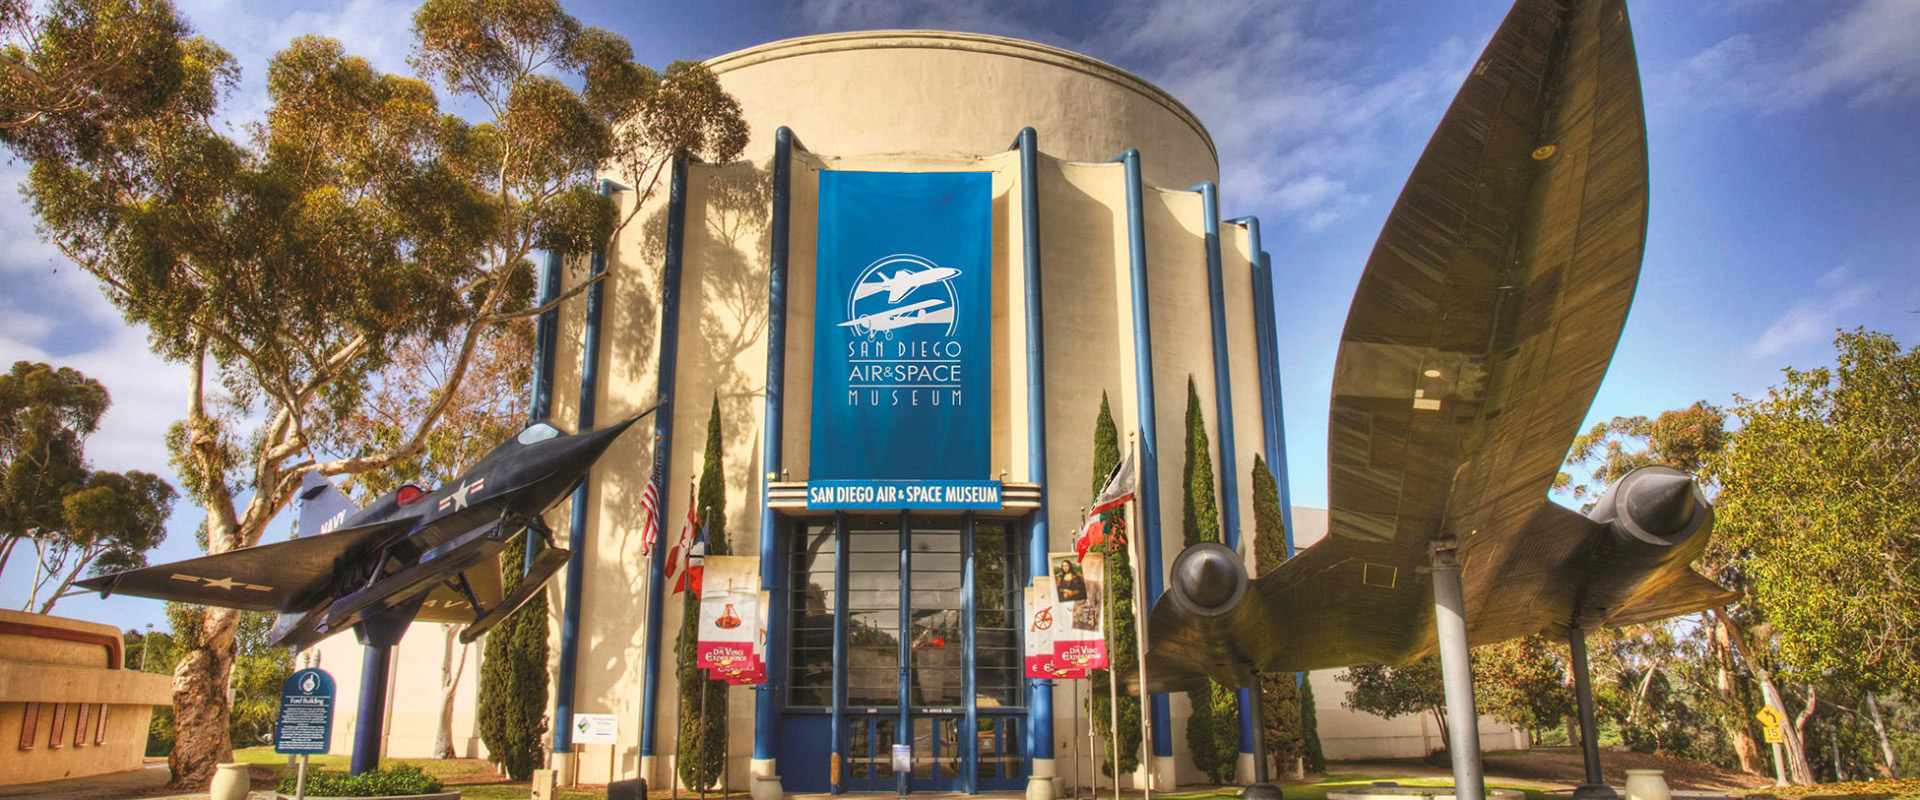 San Diego Air and Space Museum entrance